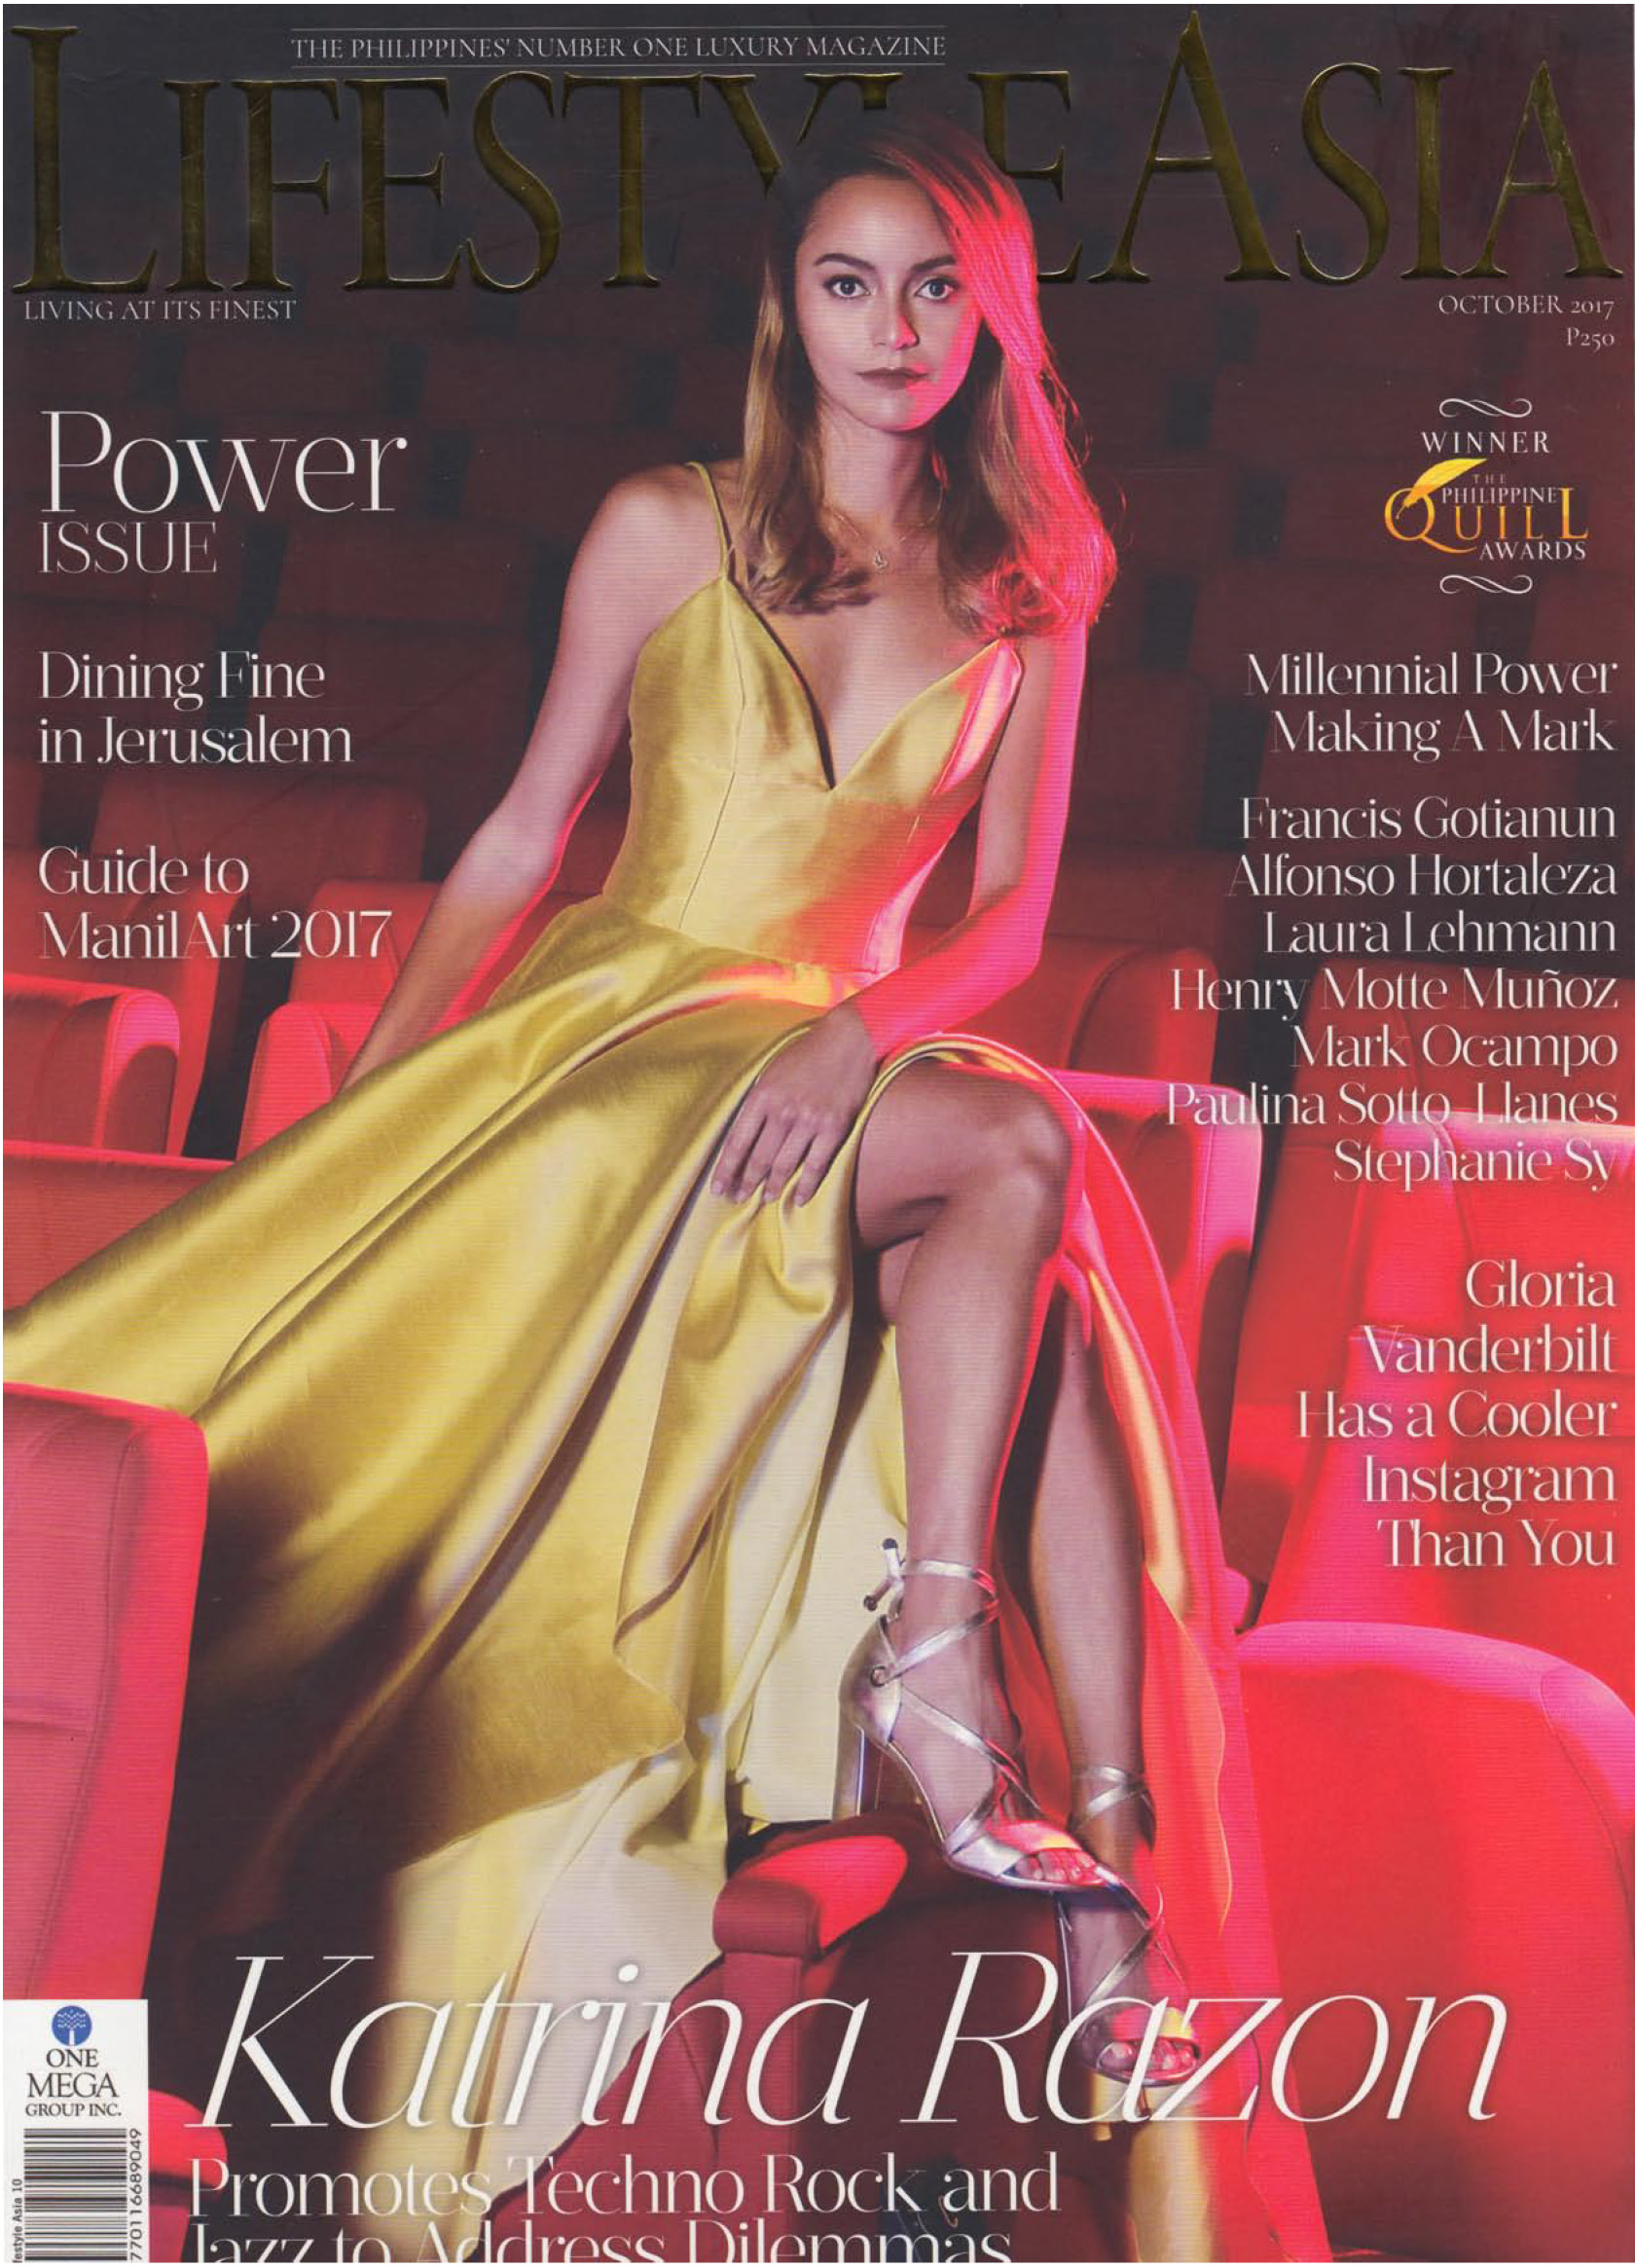 Lifestyle Asia, October 2017